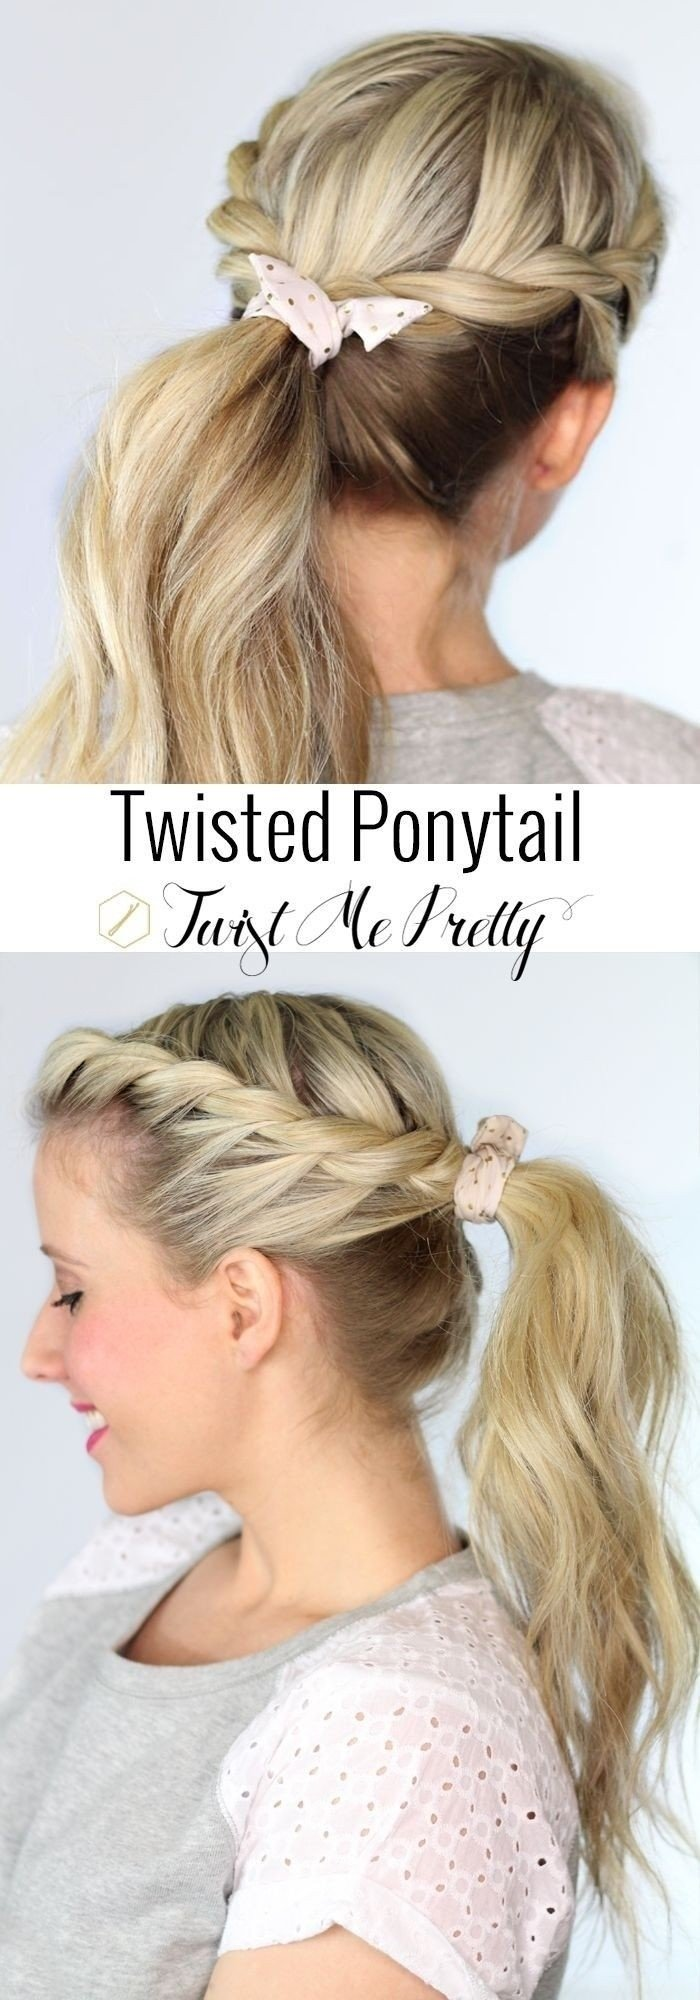 10 Famous Hairstyles Ideas For Long Hair 20 ponytail hairstyles discover latest ponytail ideas now 1 2020